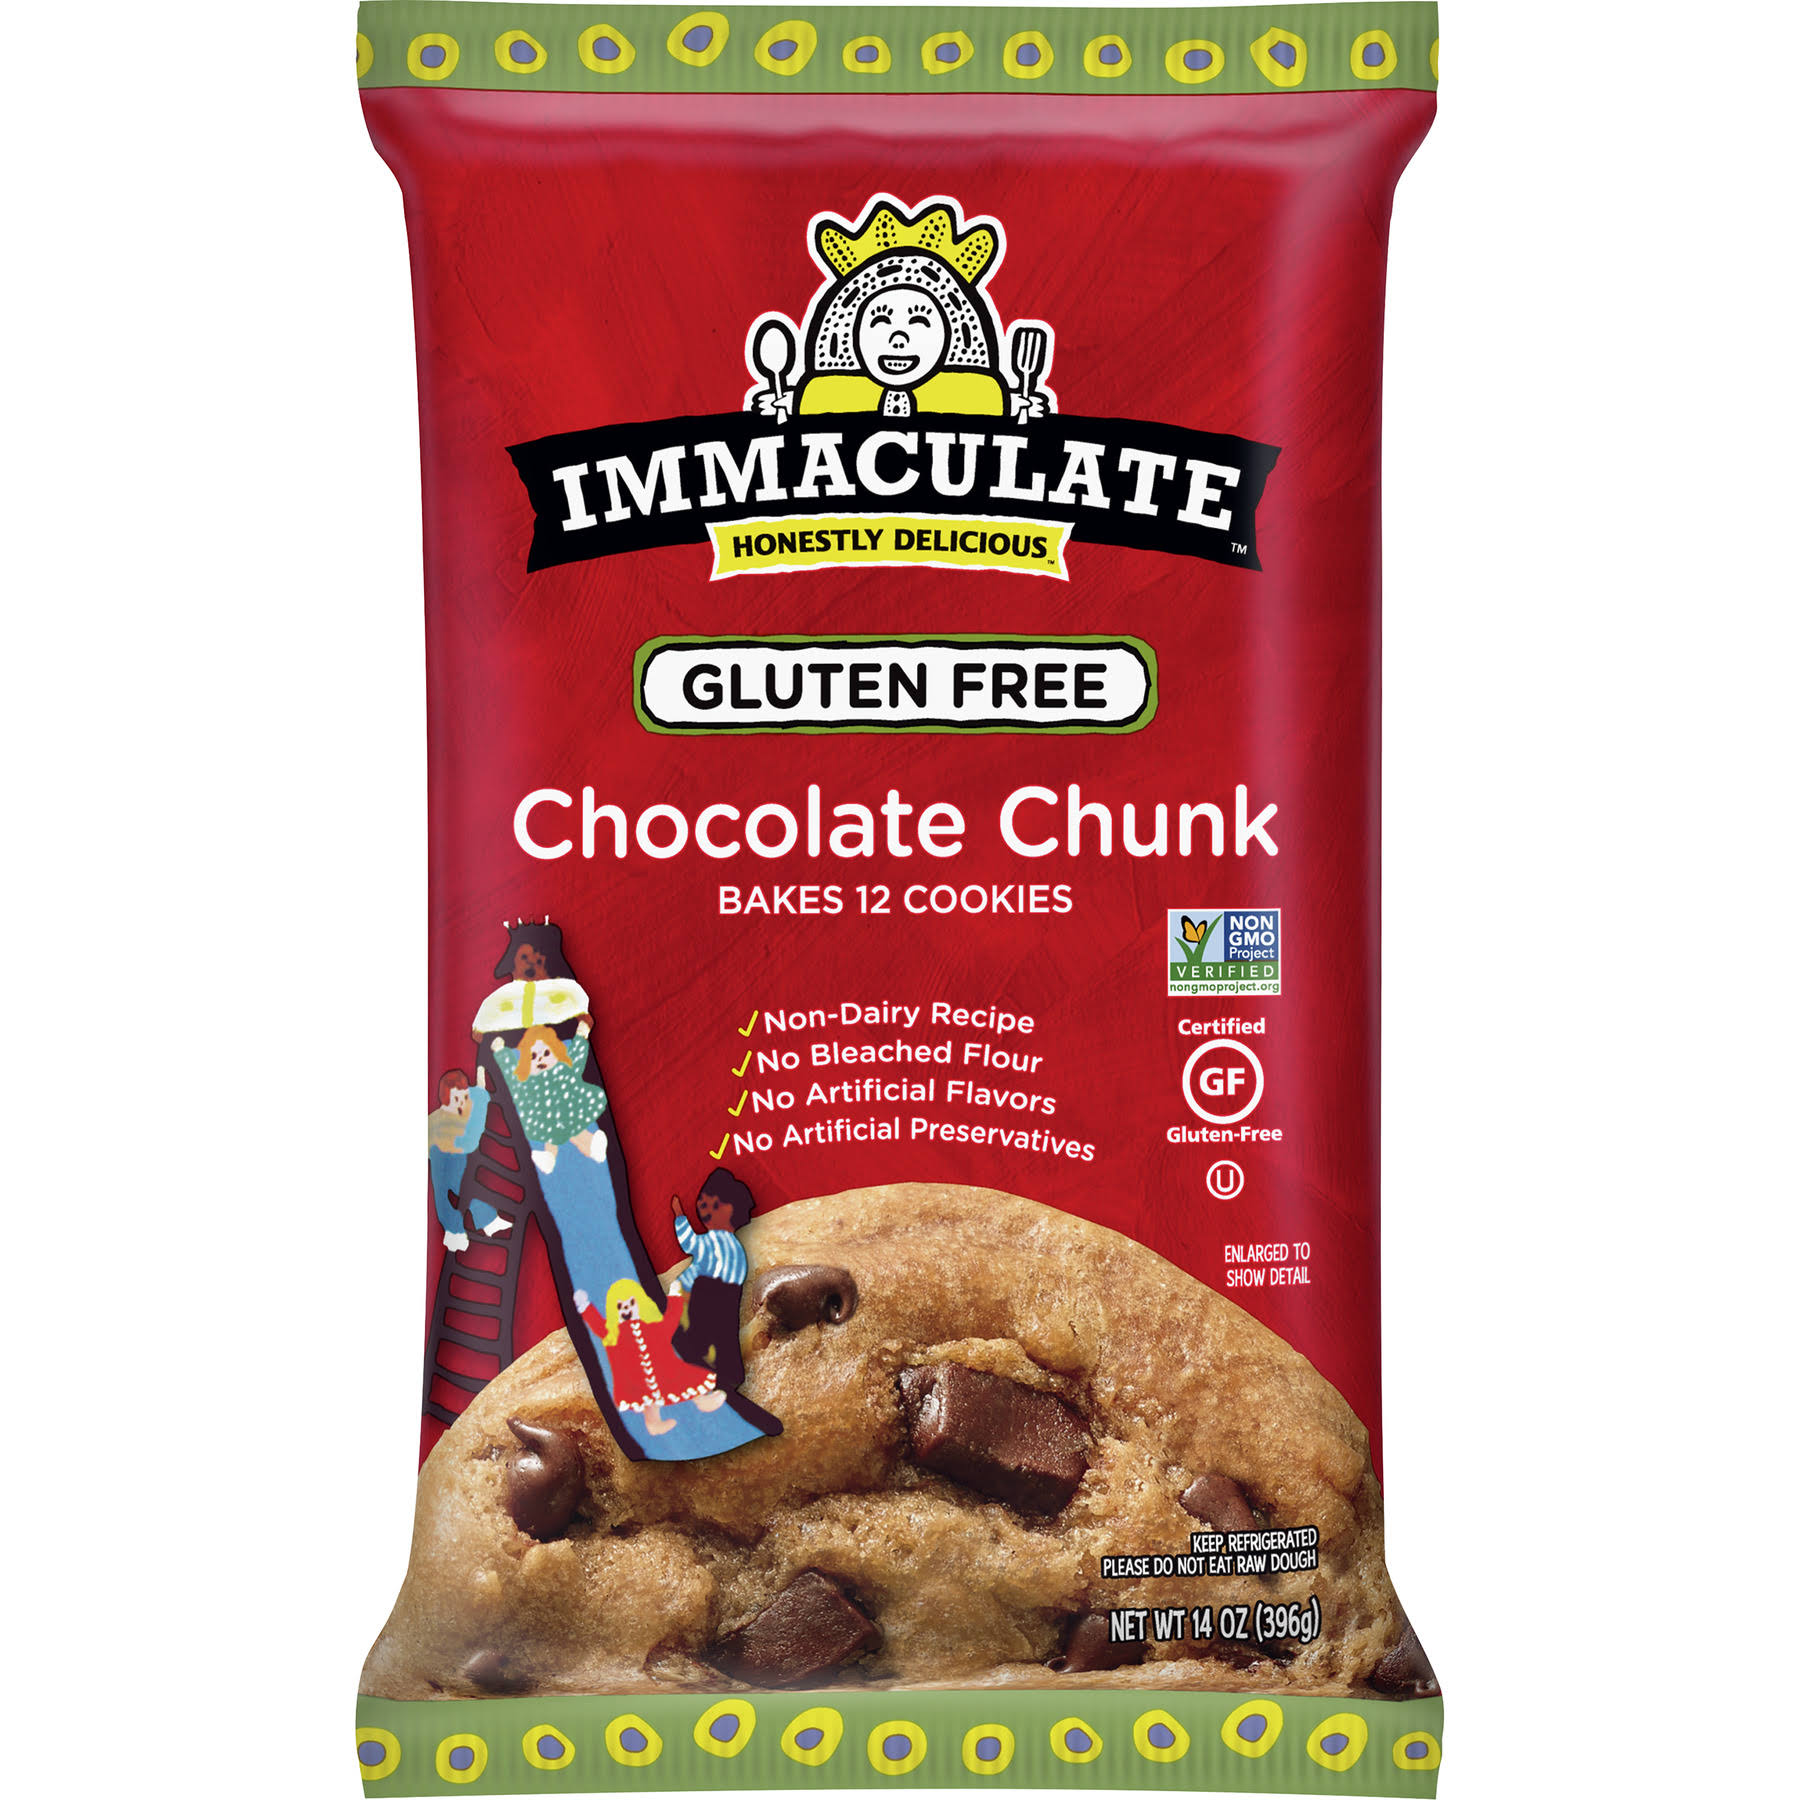 Immaculate Baking Ready to Bake Refrigerated Chocolate Chunk Cookies - 14oz